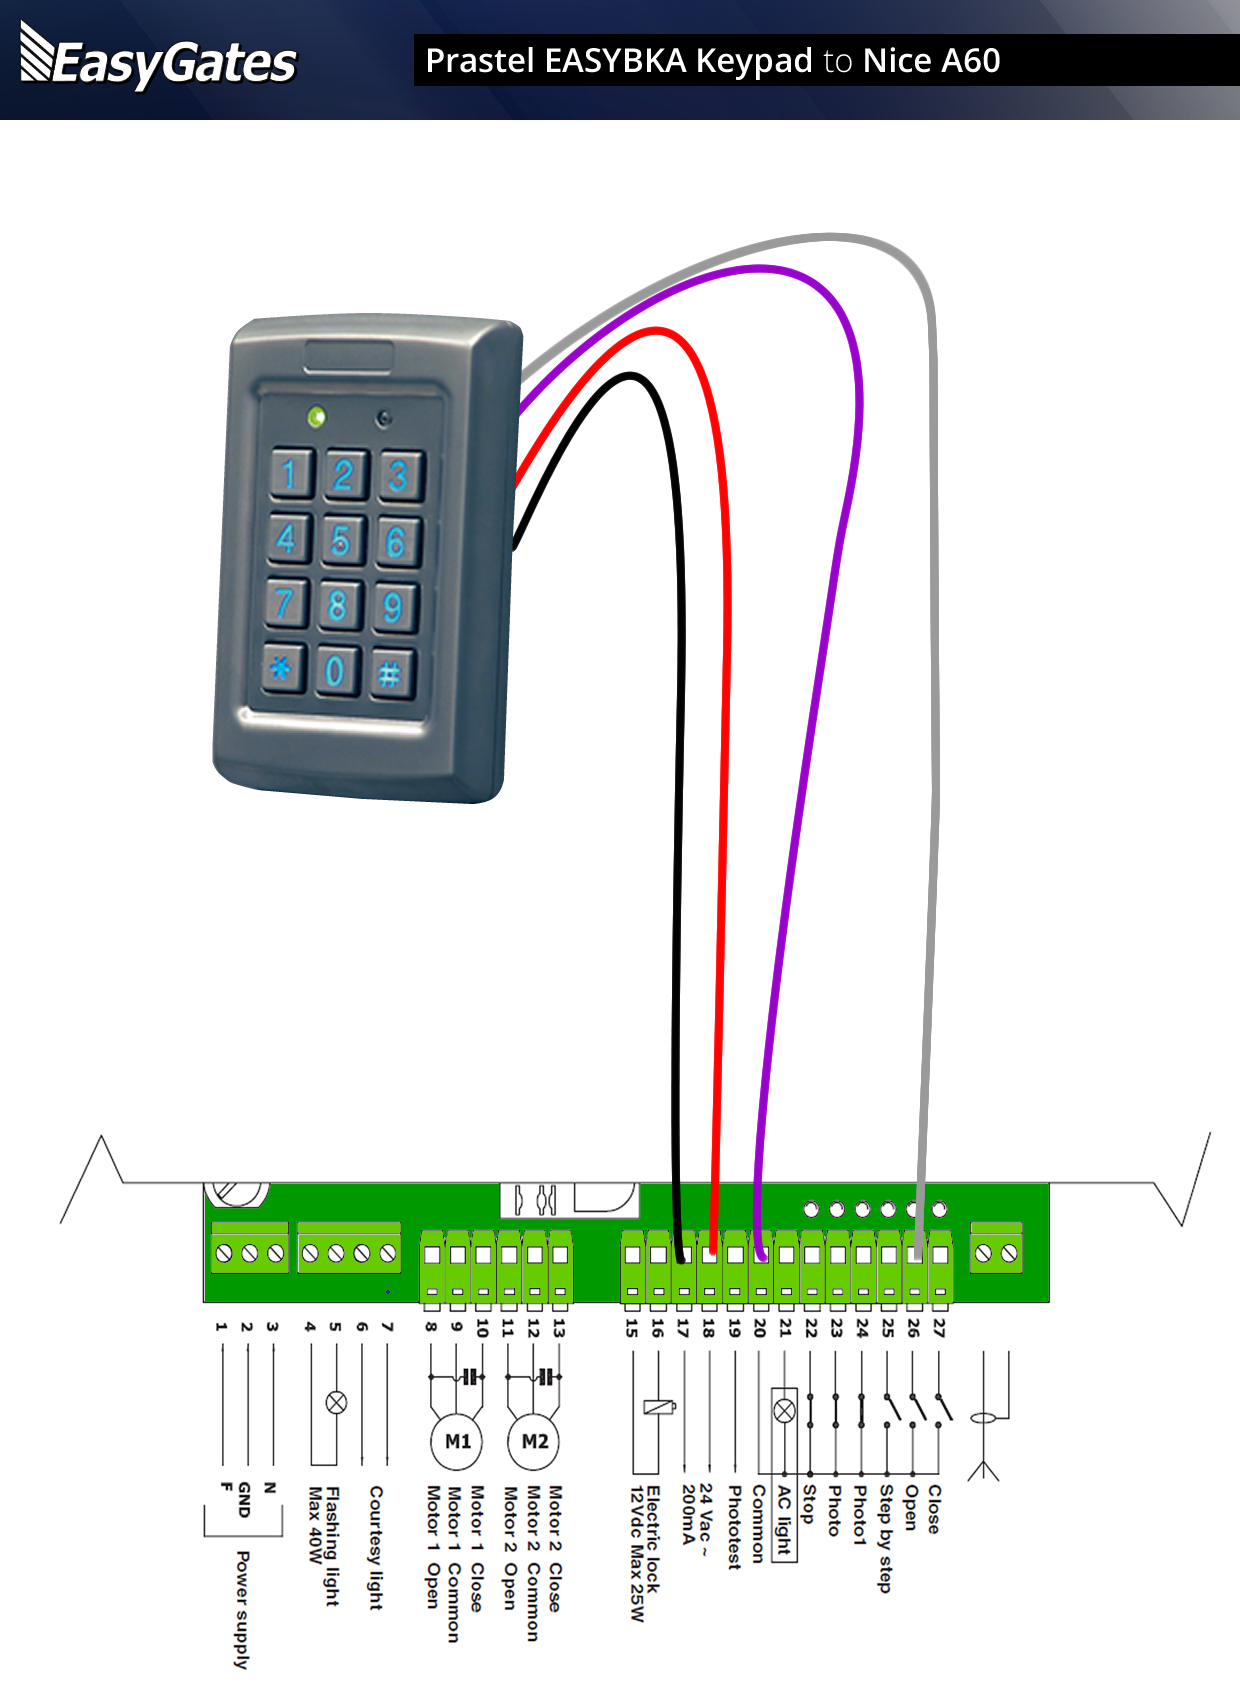 Gate photocell wiring diagram free download wiring diagram prastel easybka keypad to nice a60 control panel gate photocell wiring diagram 41 9 volt photocell wiring diagram outdoor photocell wiring cheapraybanclubmaster